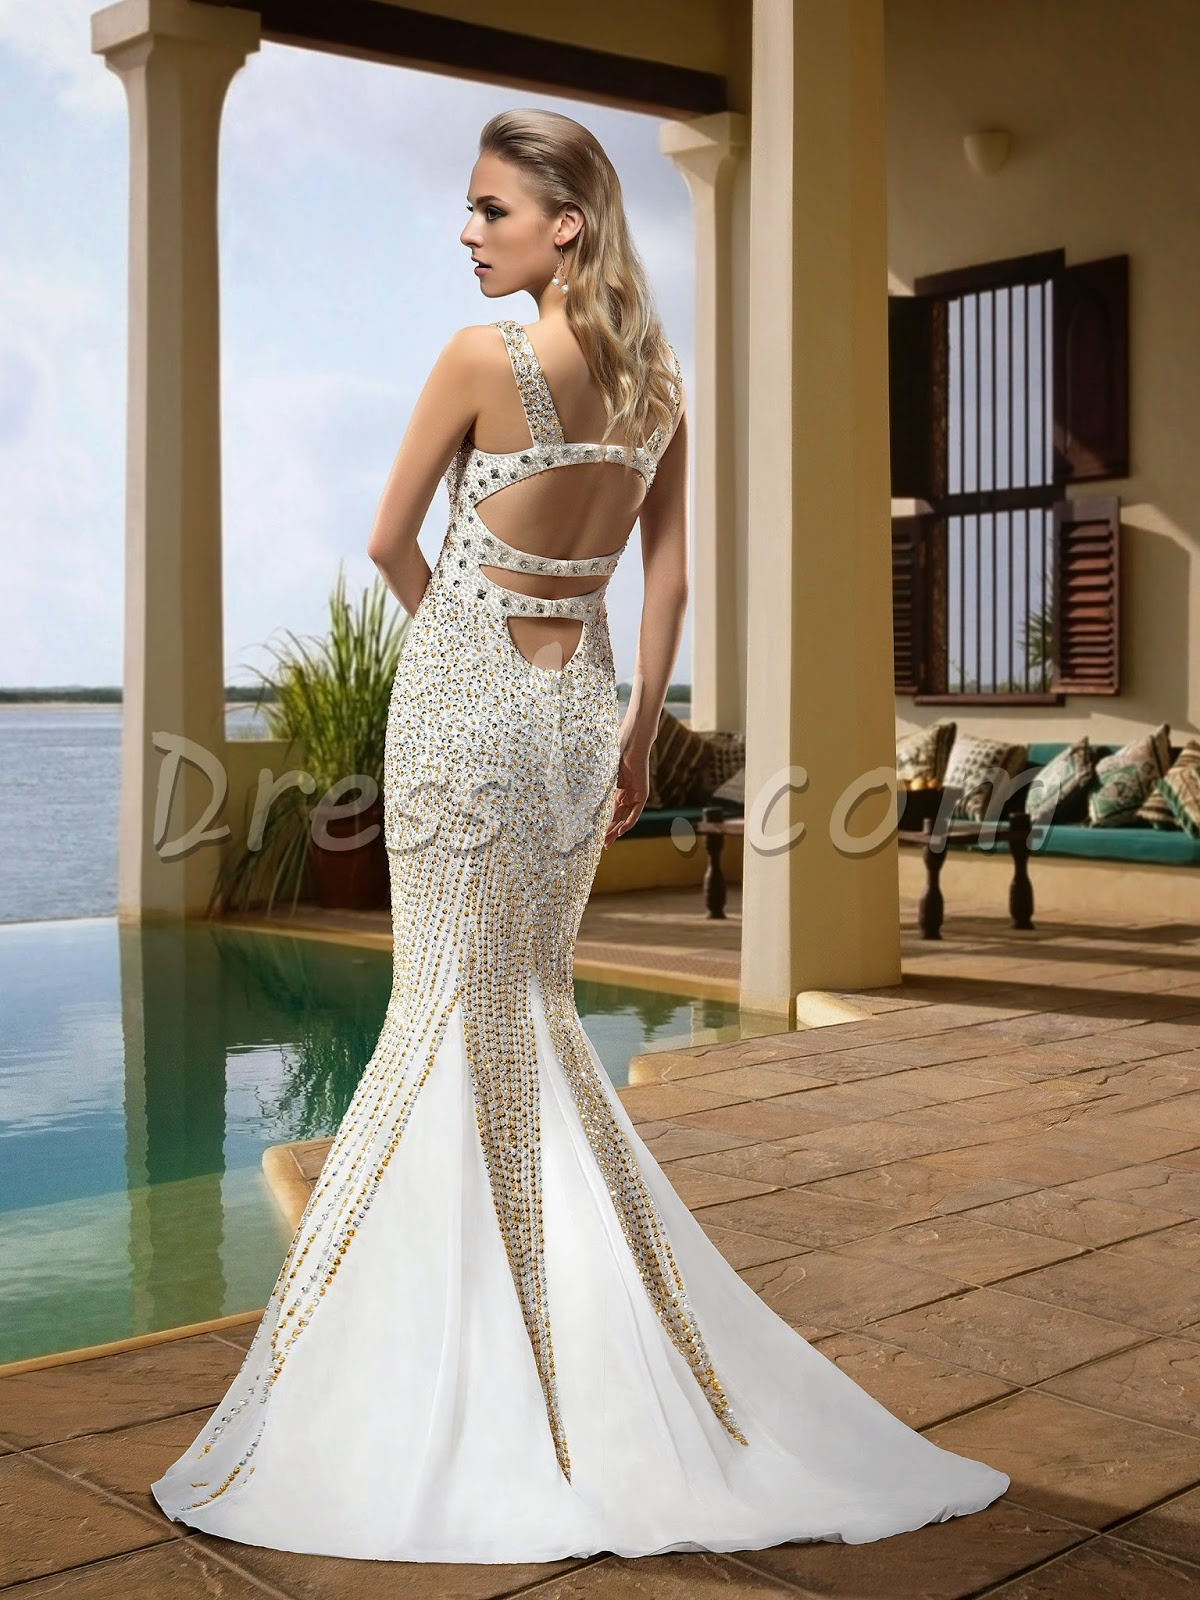 Sexy Mermaid Wedding Dresses at DressV